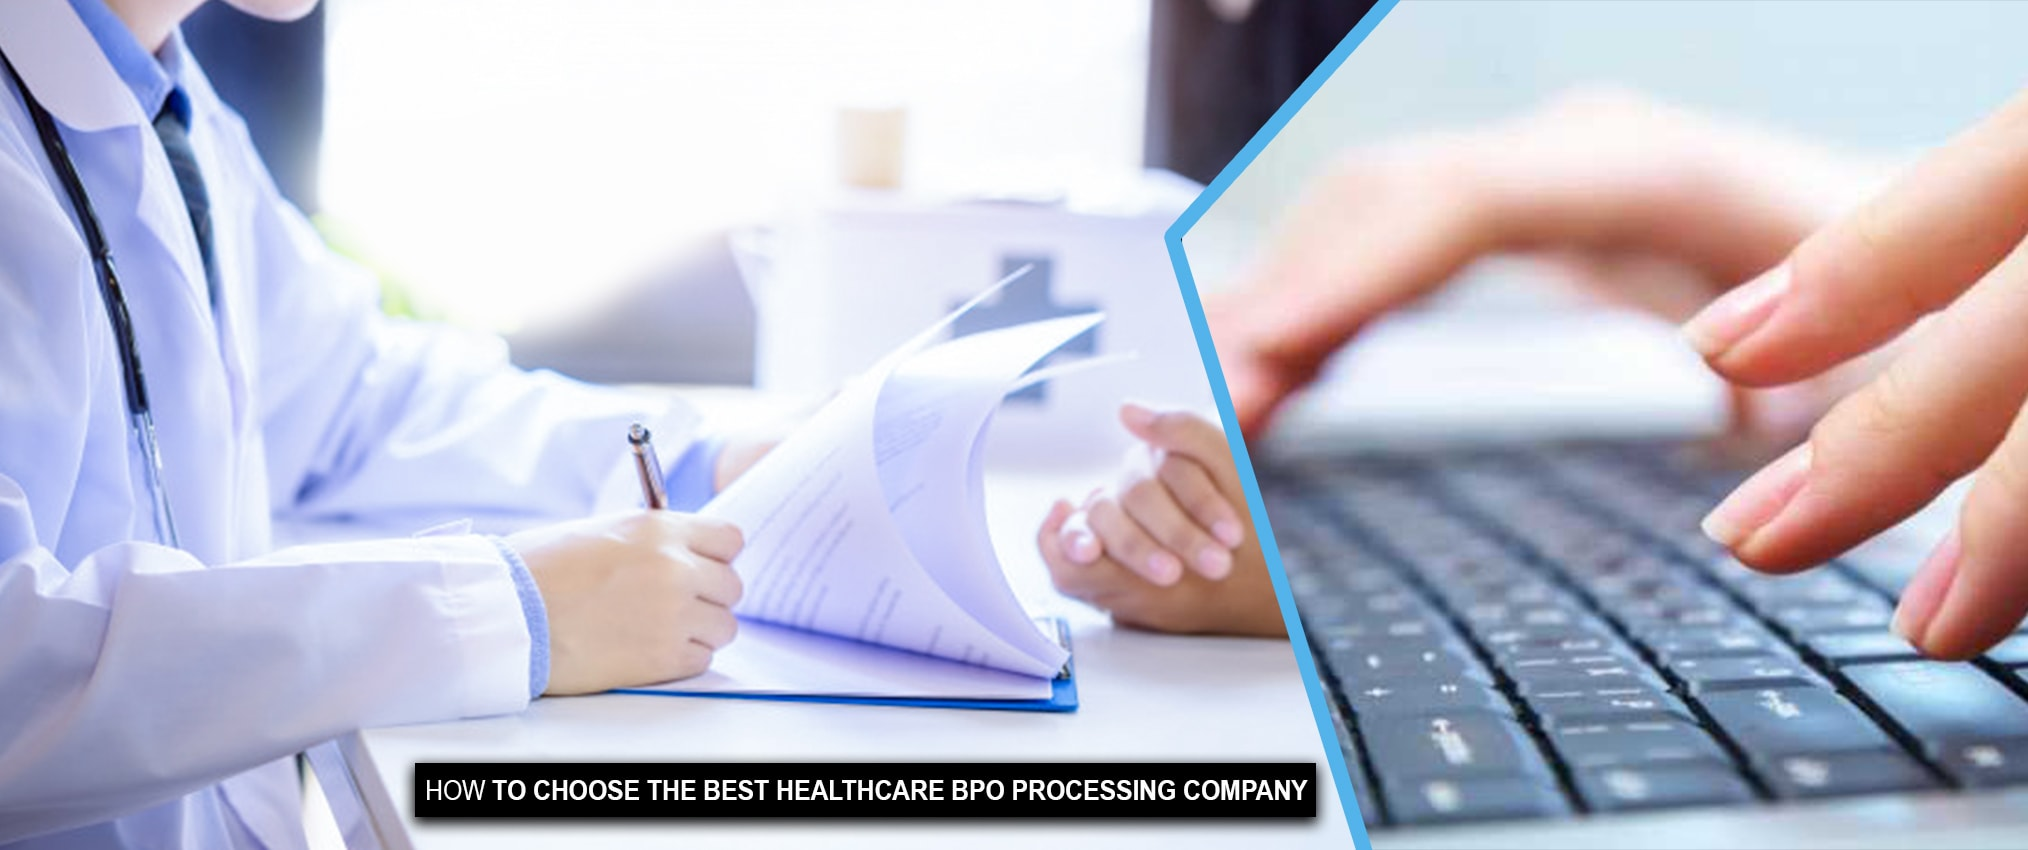 how-to-choose-the-best-healthcare-bpo-company